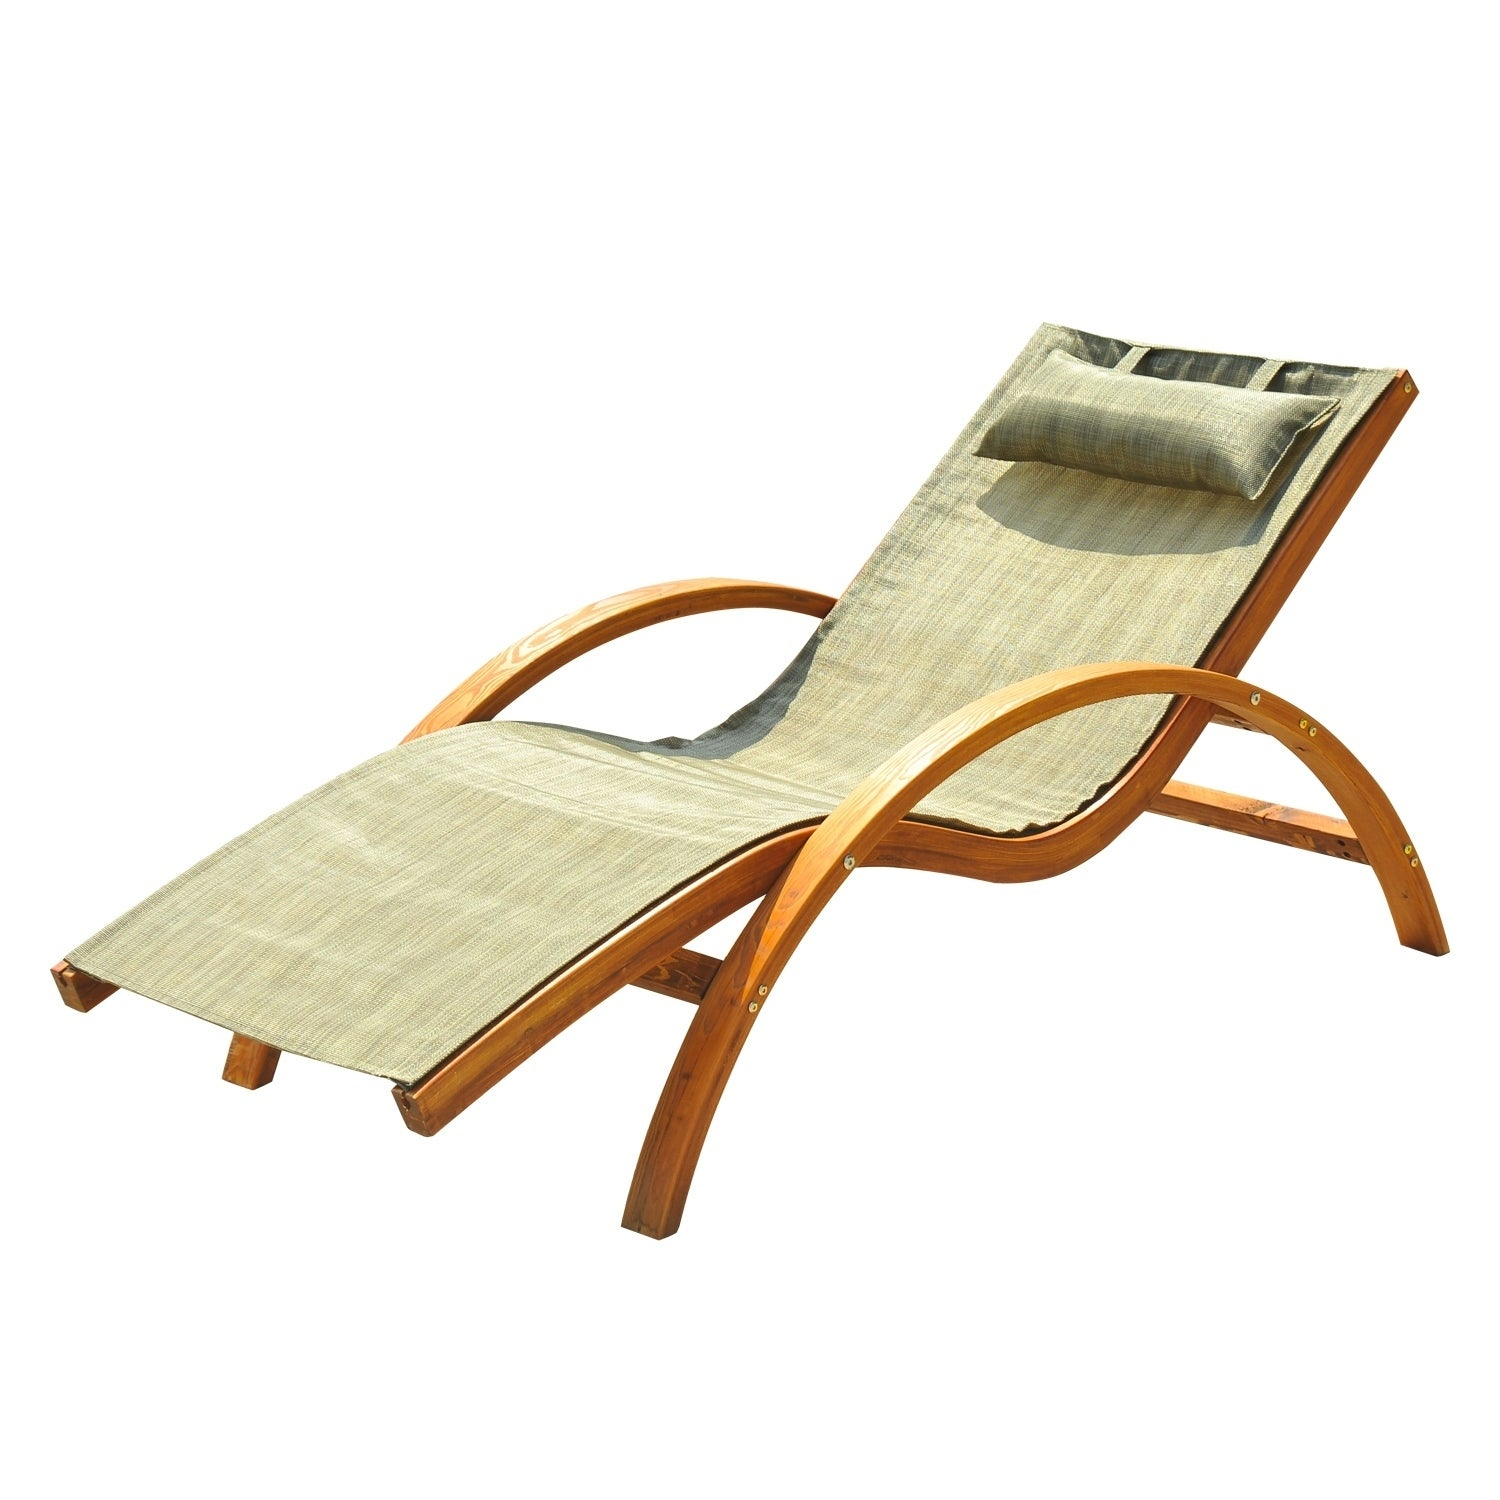 Aosom Outsunny Outdoor Reclining Mesh Lounger Chair w/ Cu...